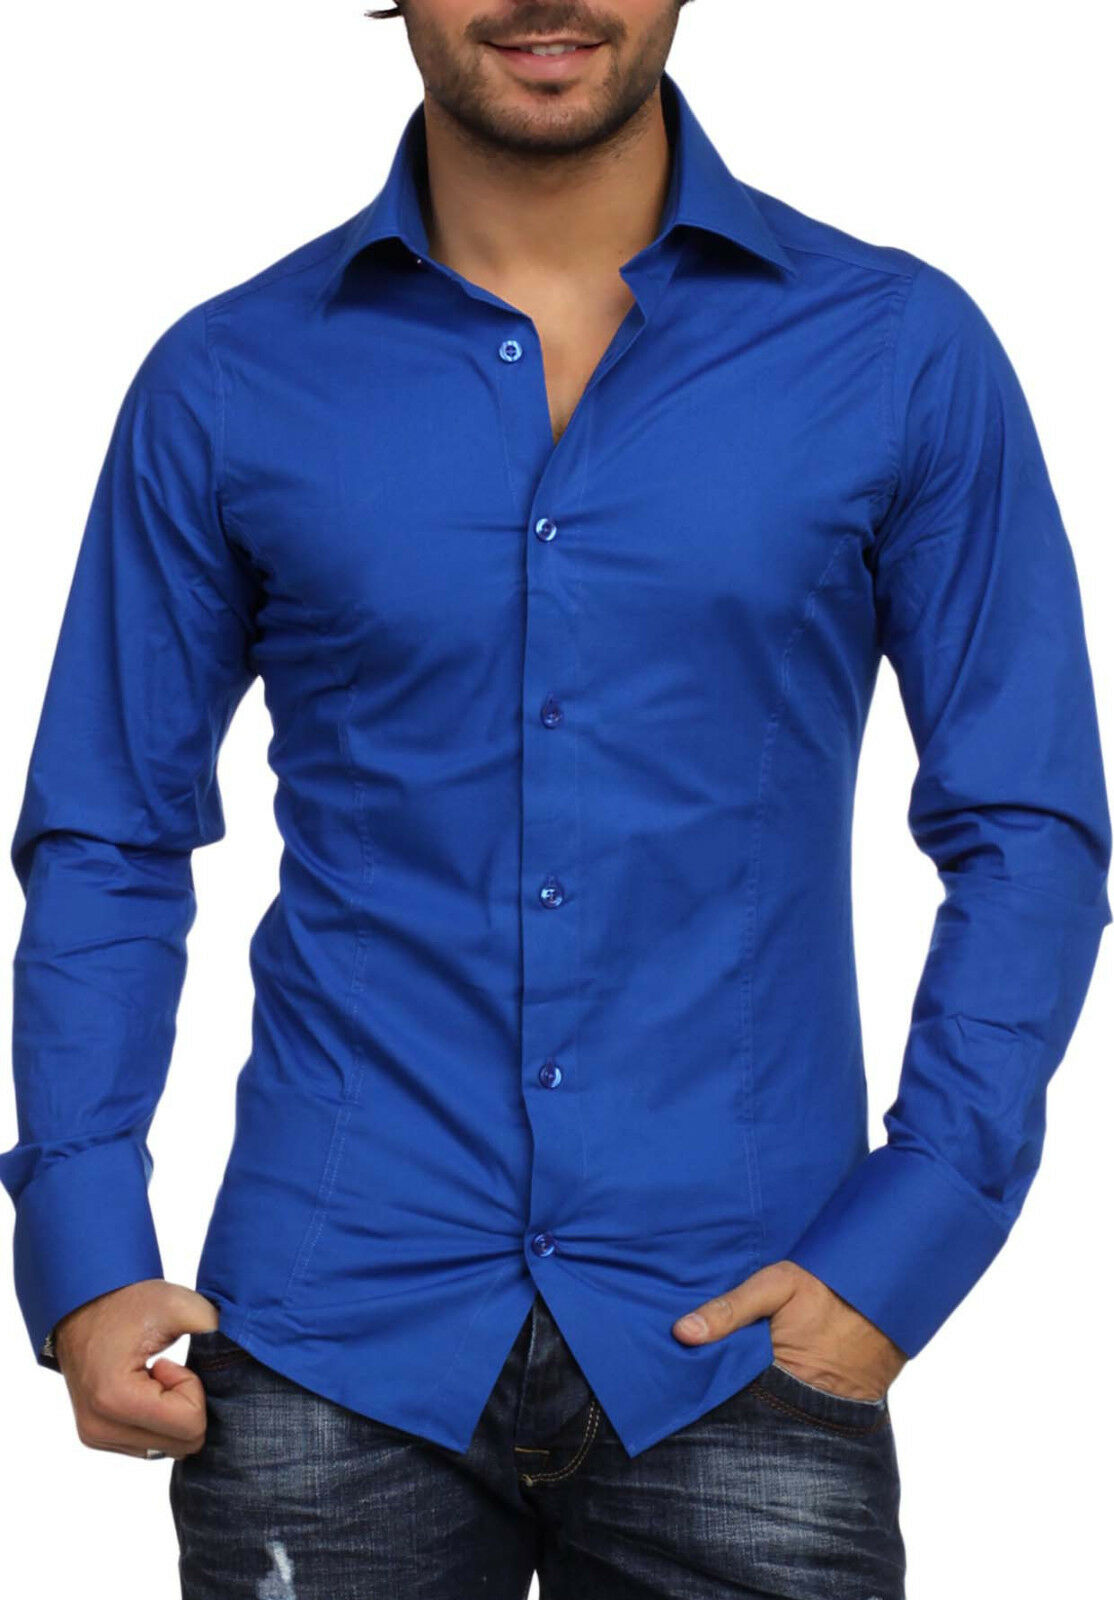 Blu Royal - Blue Men's Long Sleeved Shirt Fashion